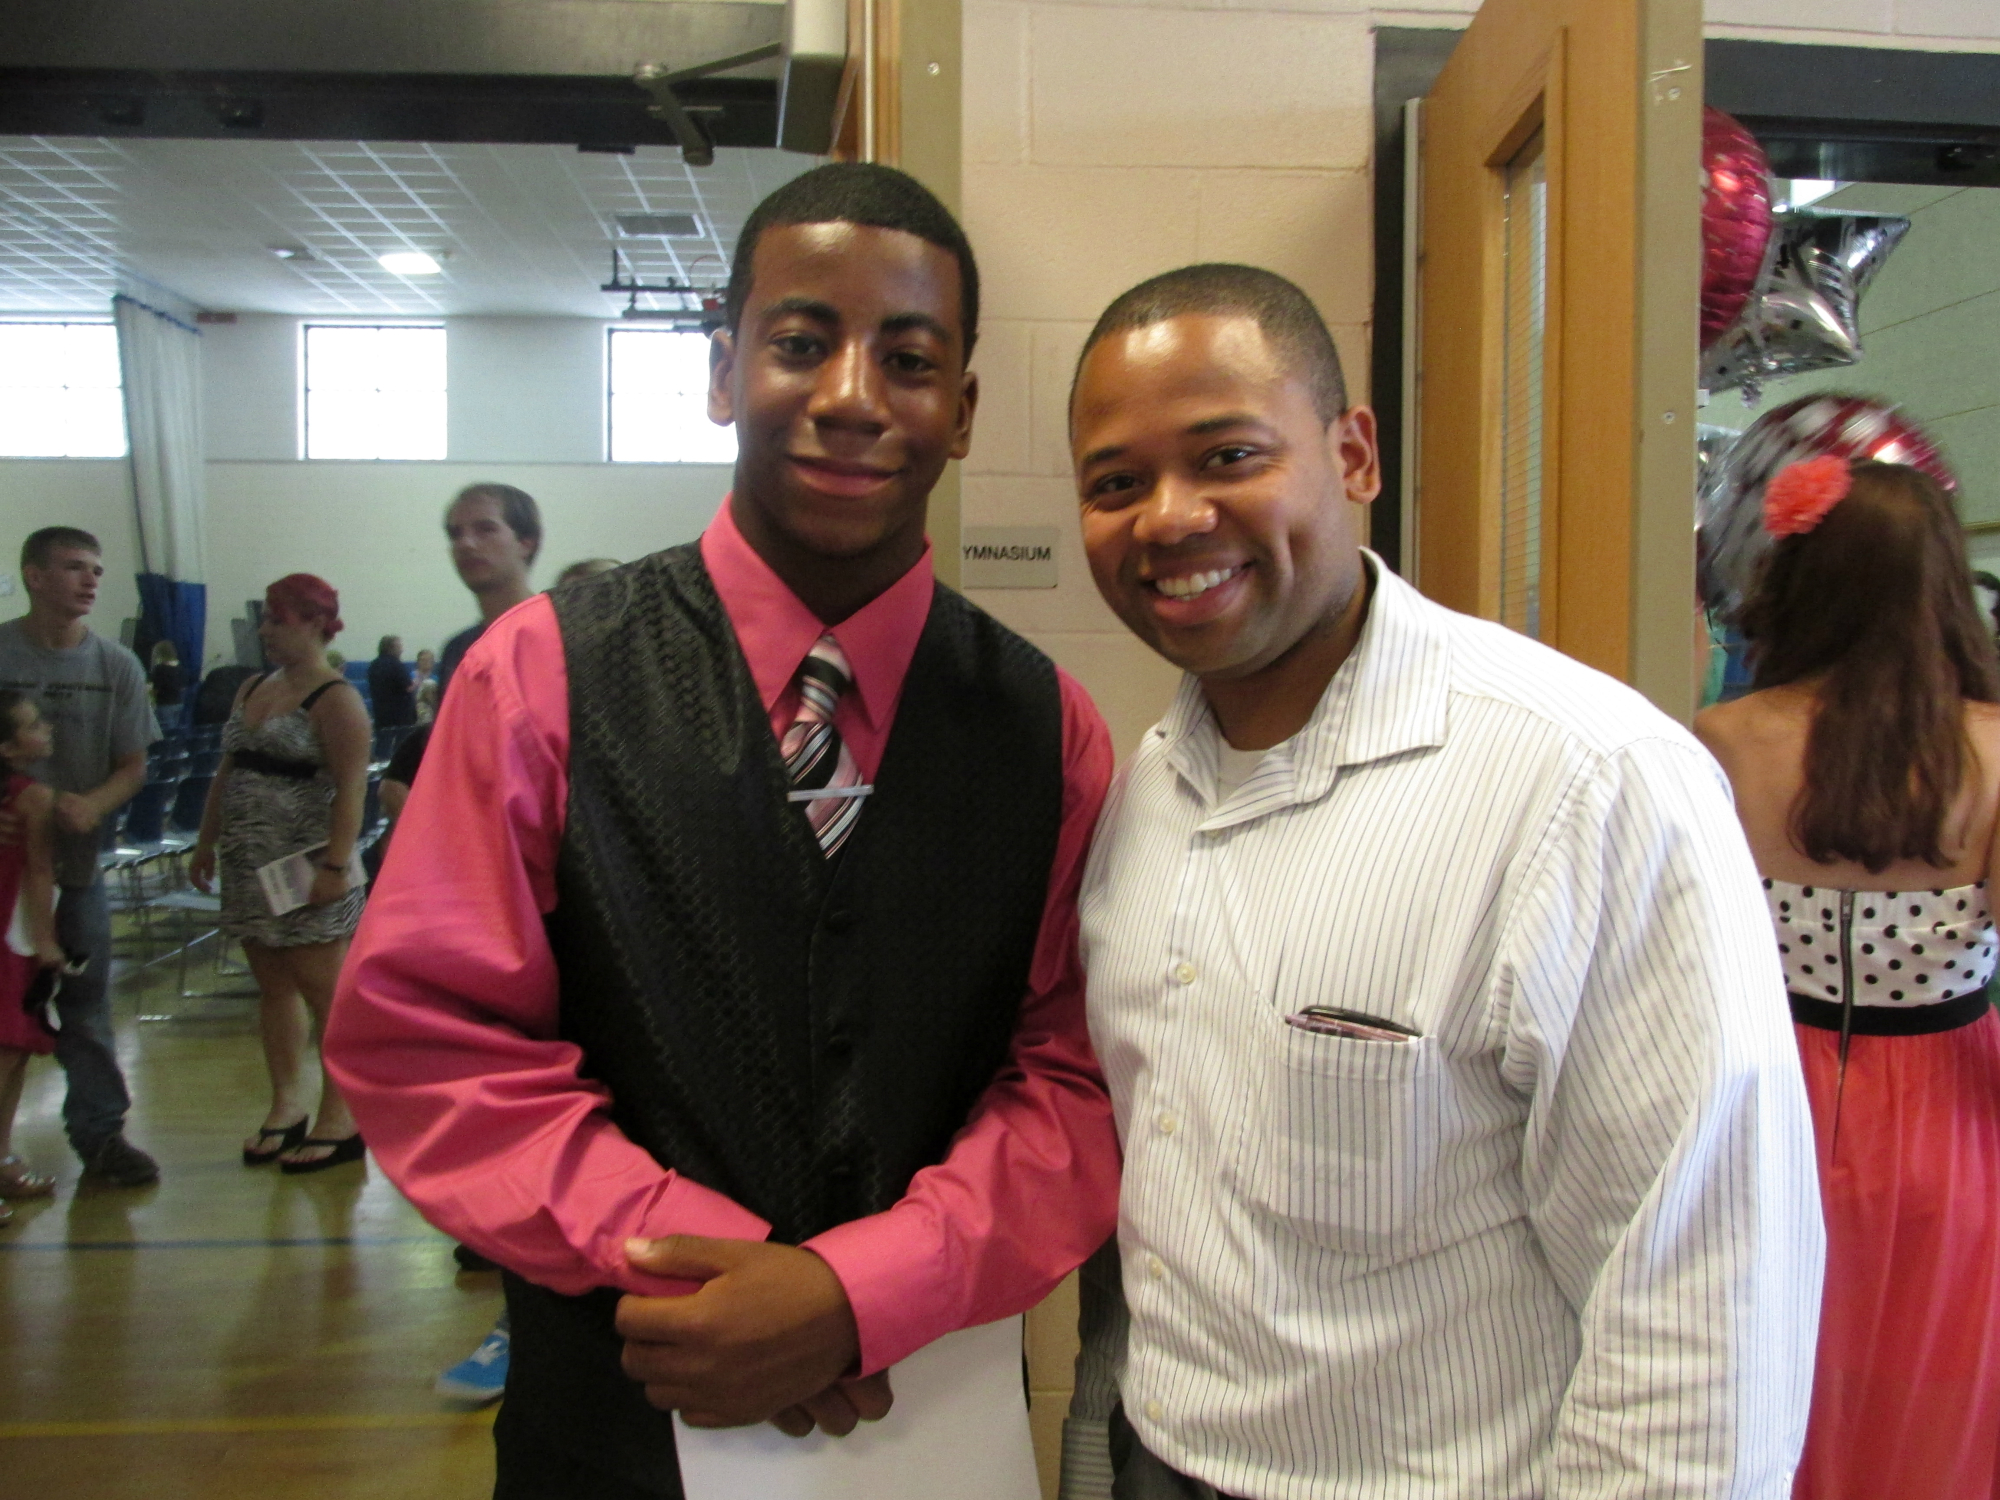 Elijah and a YOUTH POWER! constituent at a community outing